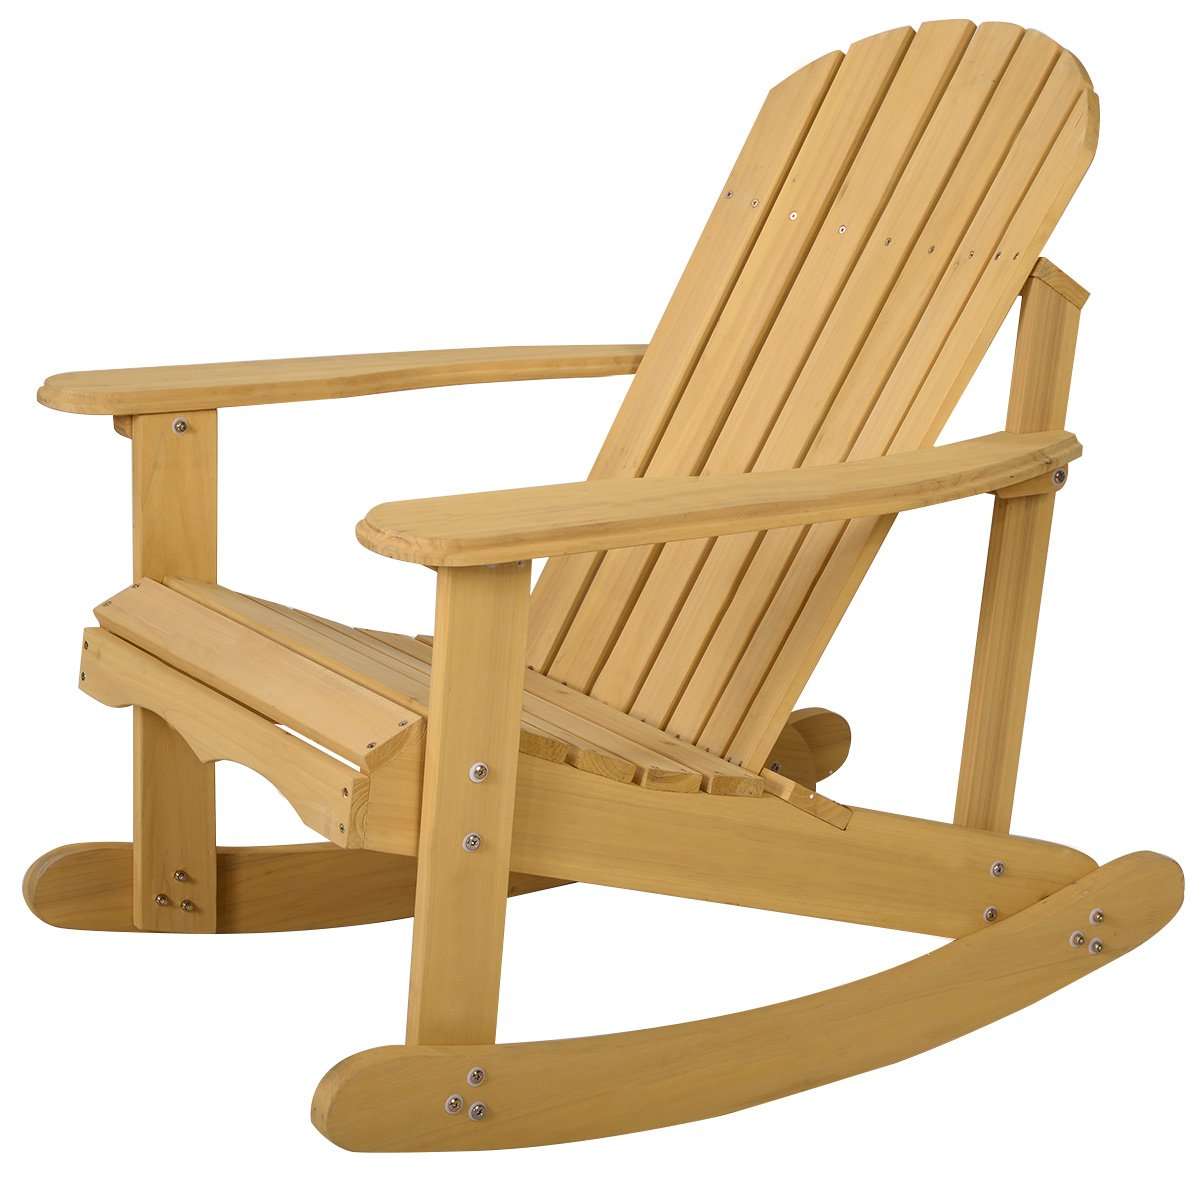 Giantex Adirondack Chair Outdoor Natural Fir Wood Rocking